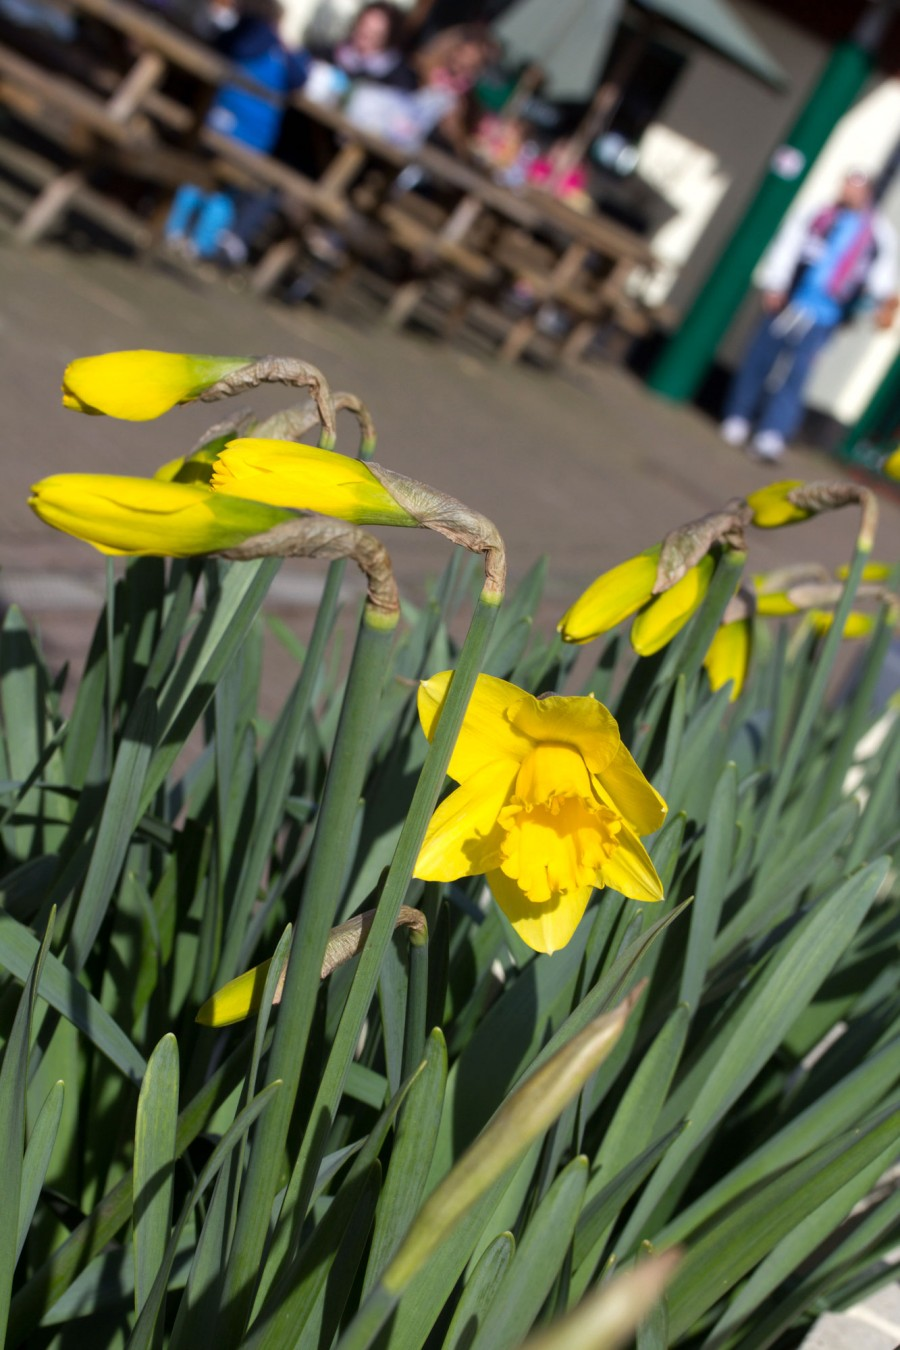 Daffodils in flower in the main courtyard.